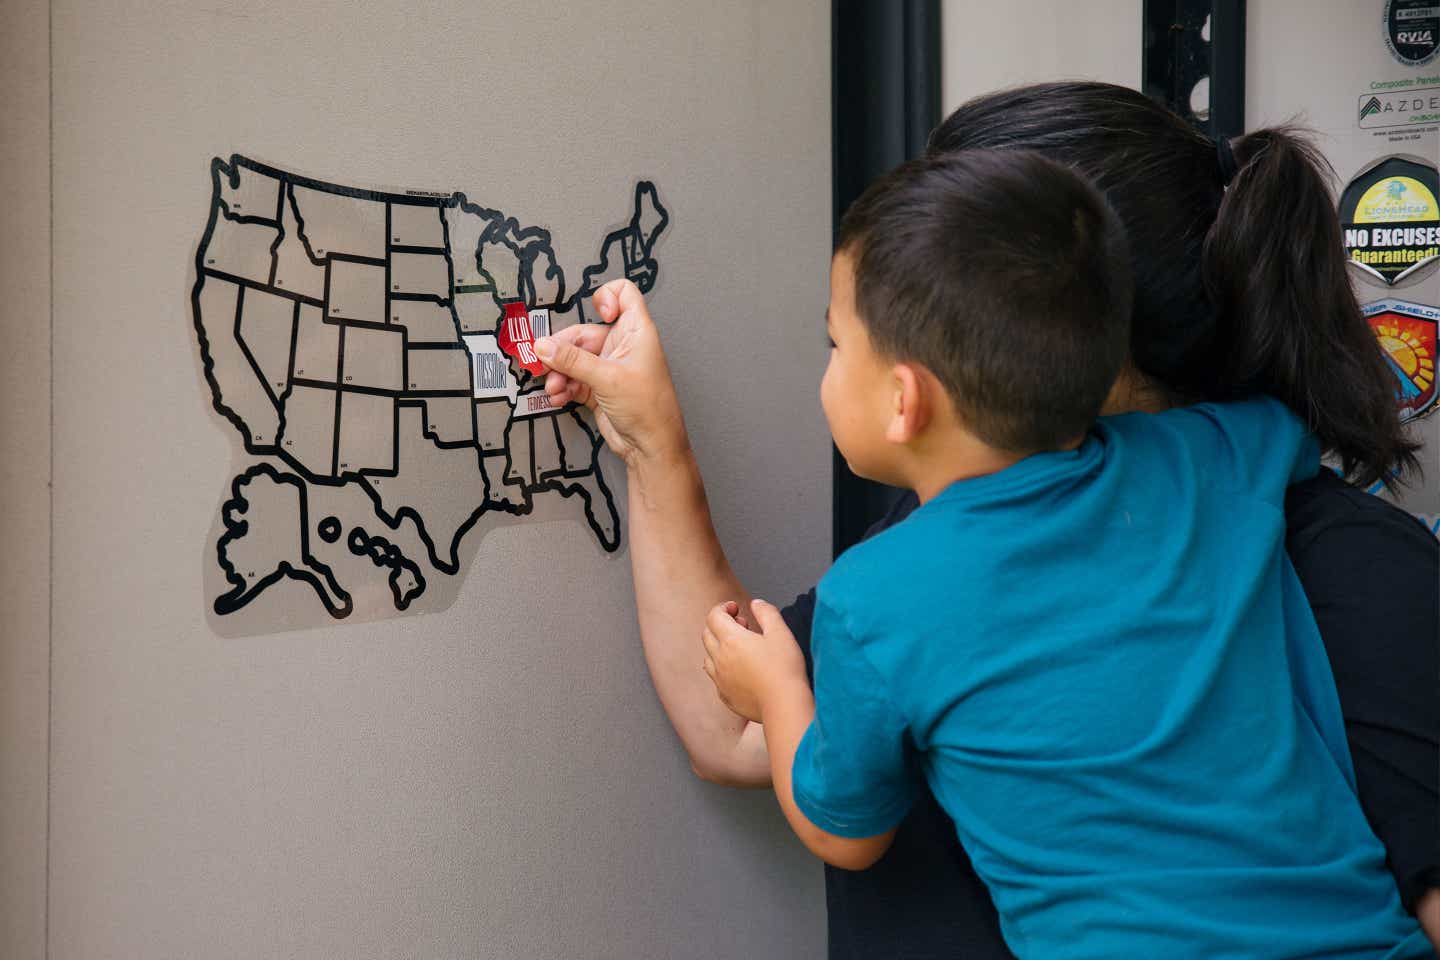 Angelica helps her son place a sticker for Illinois on their RV sticker map to indicate where they traveled.